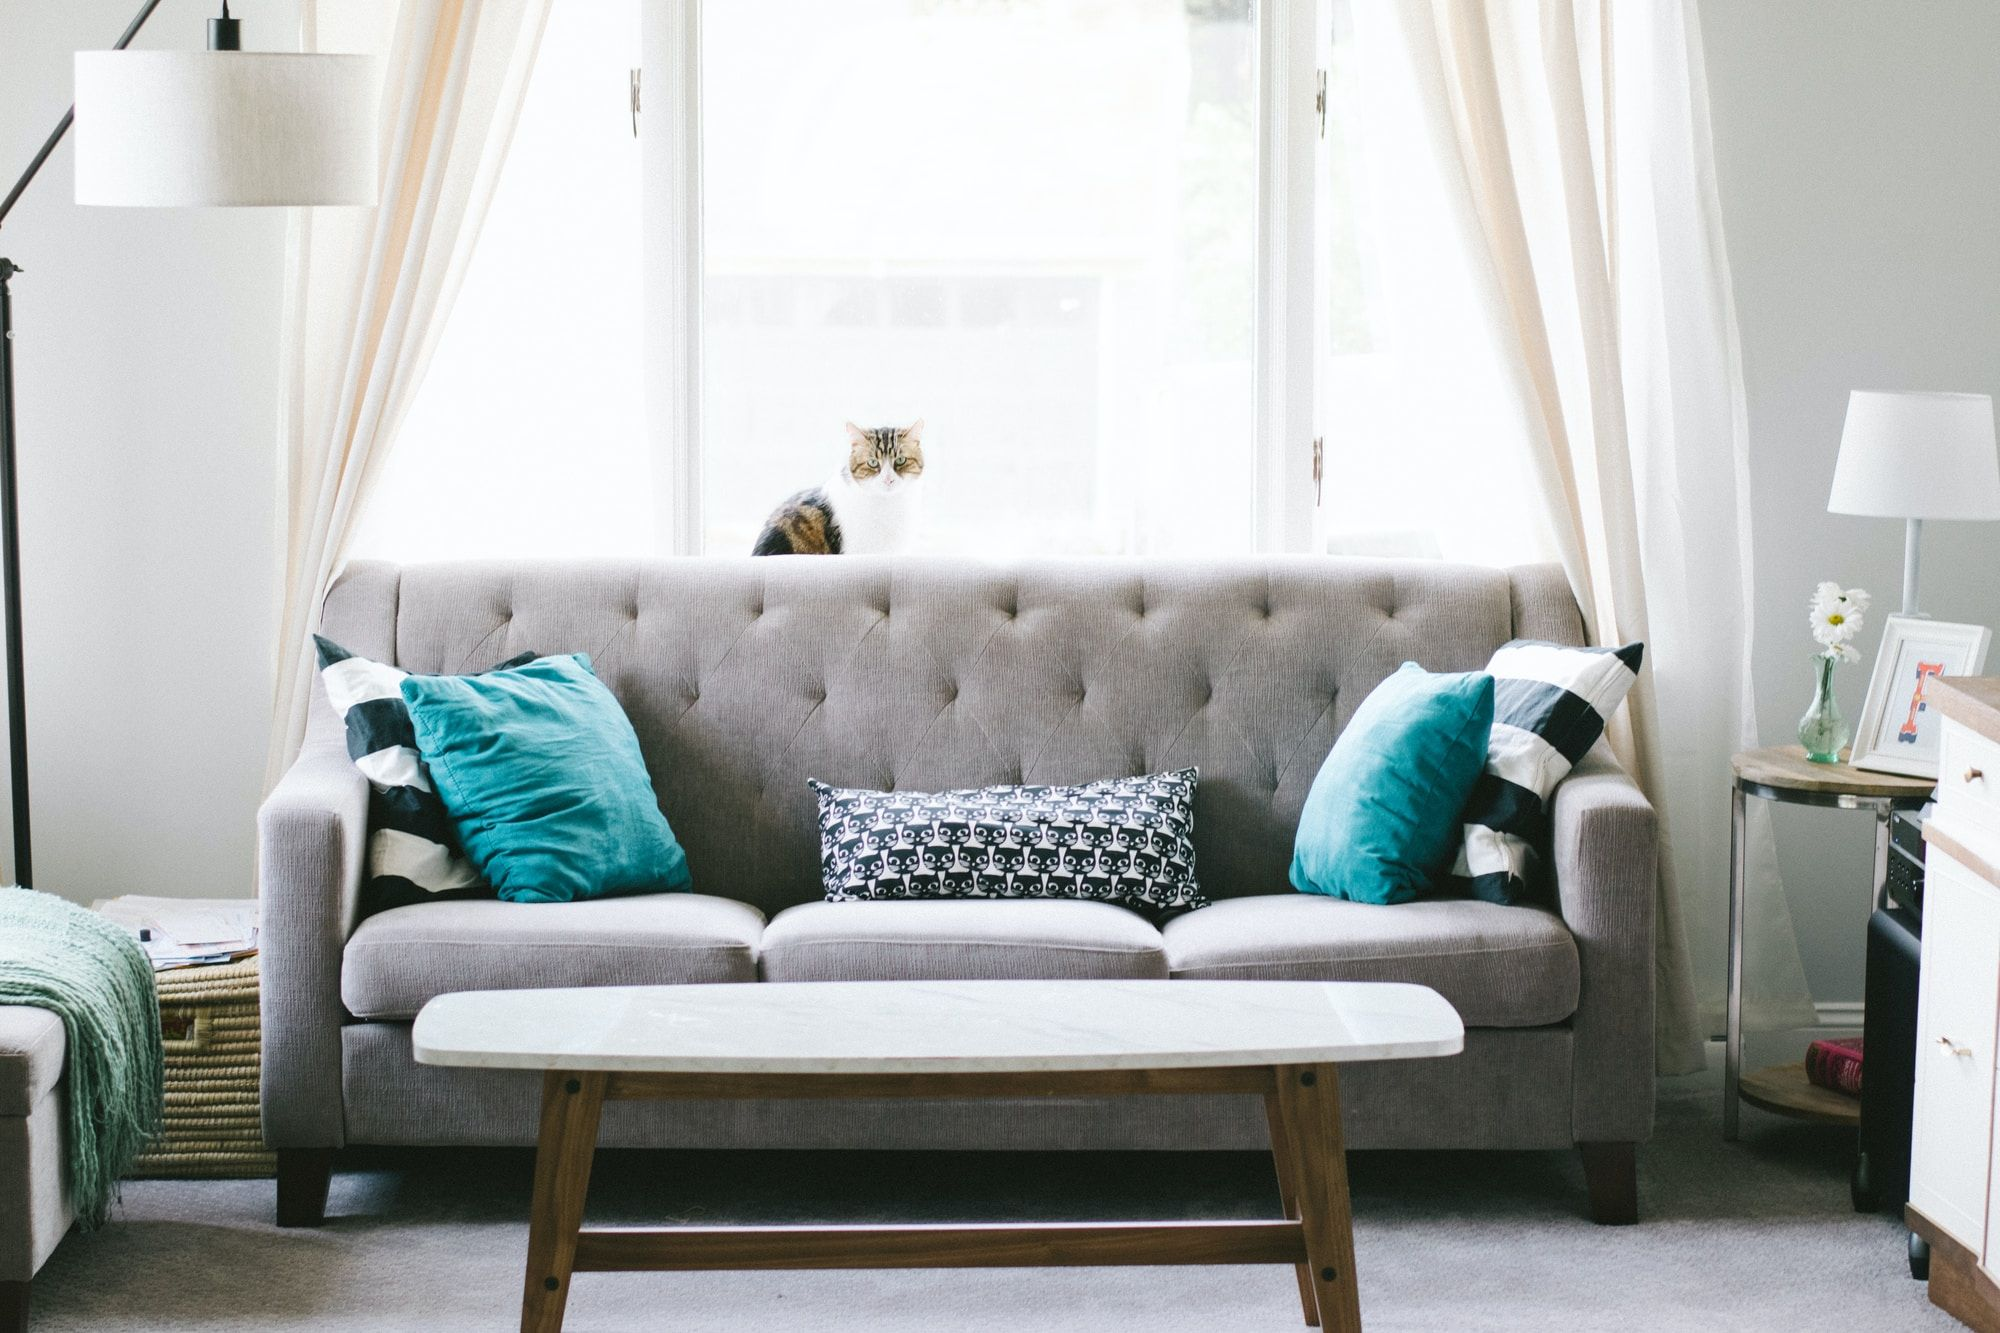 A grey couch situated in a living room